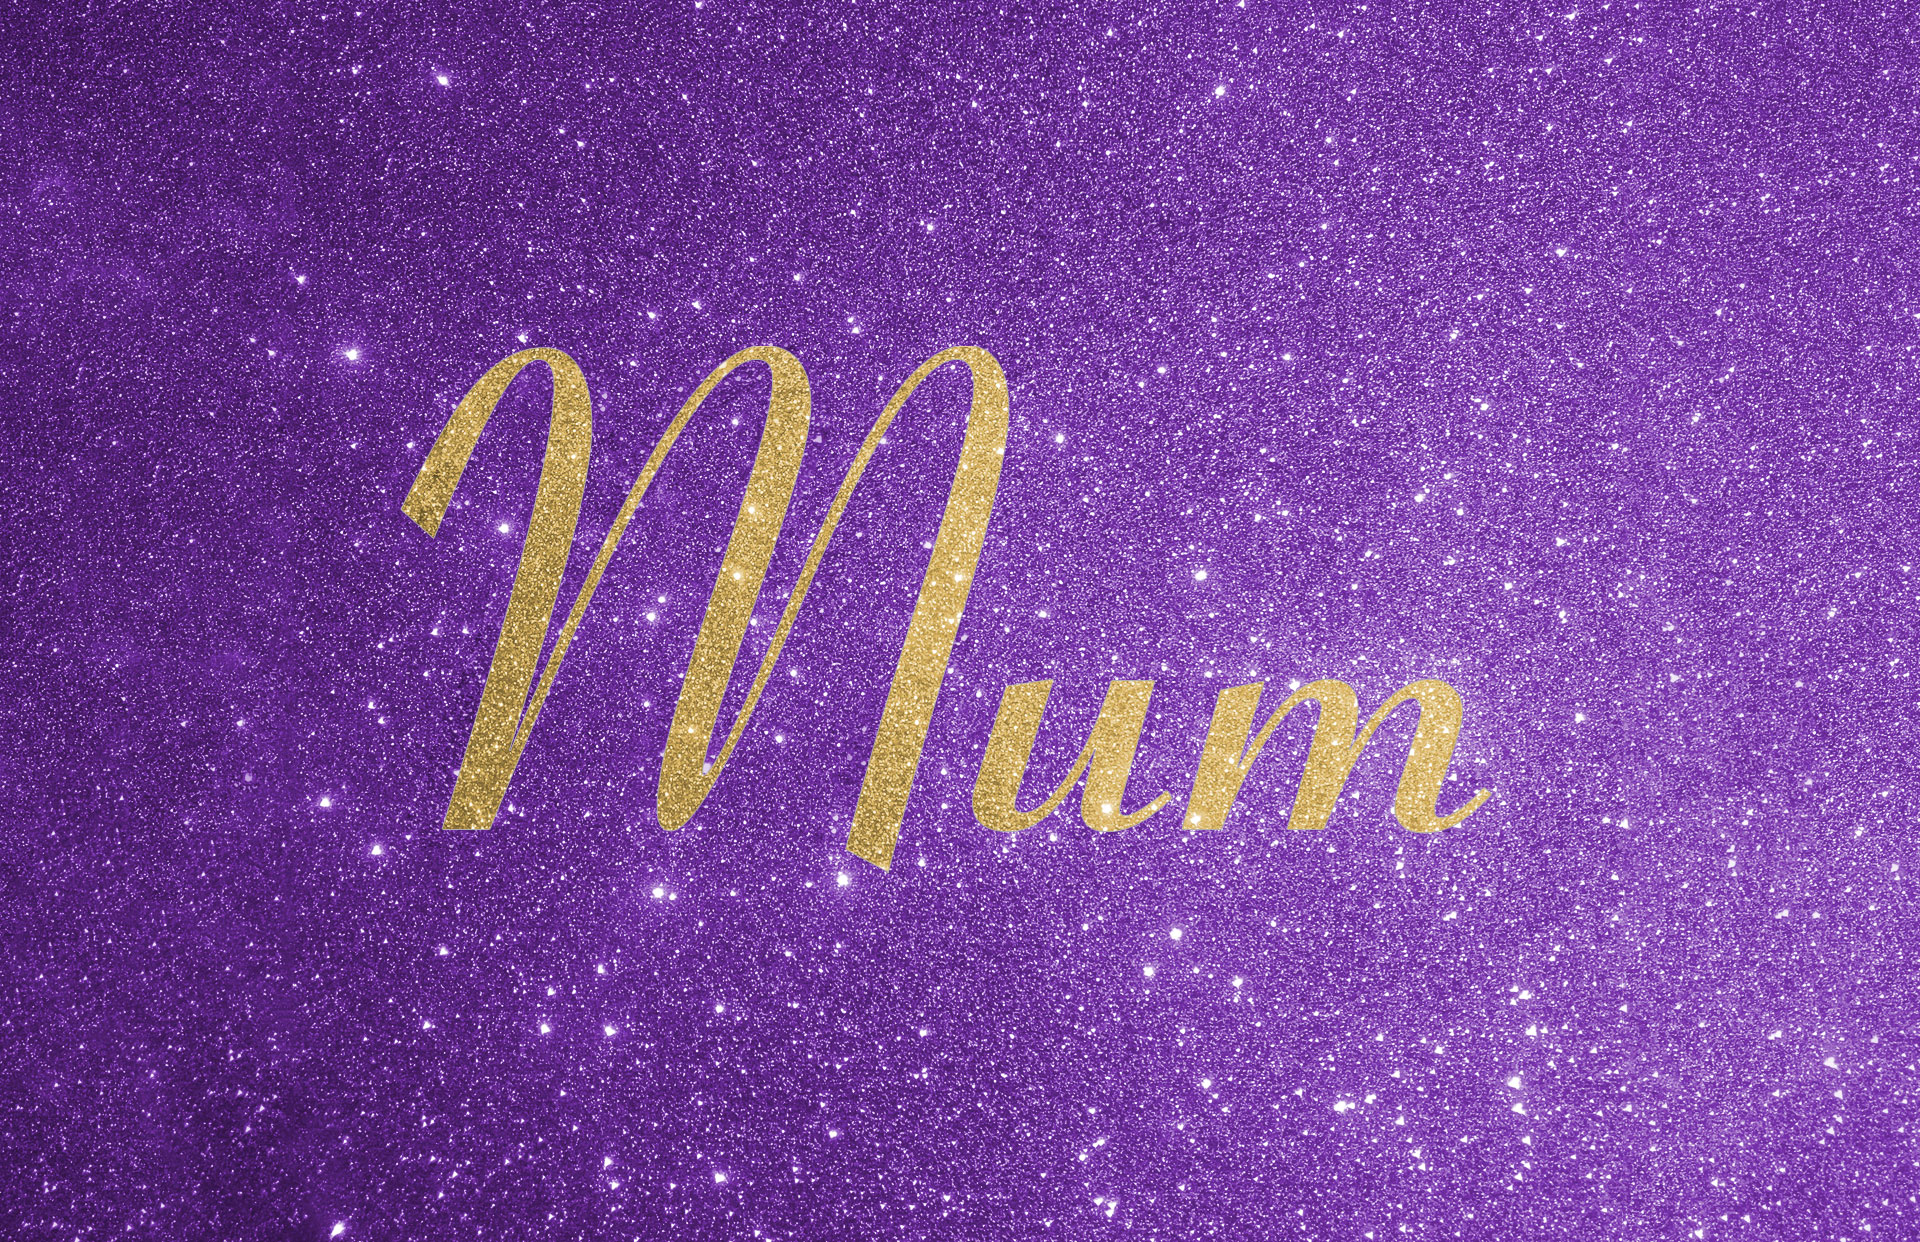 Glitter contrast wording shown in gold